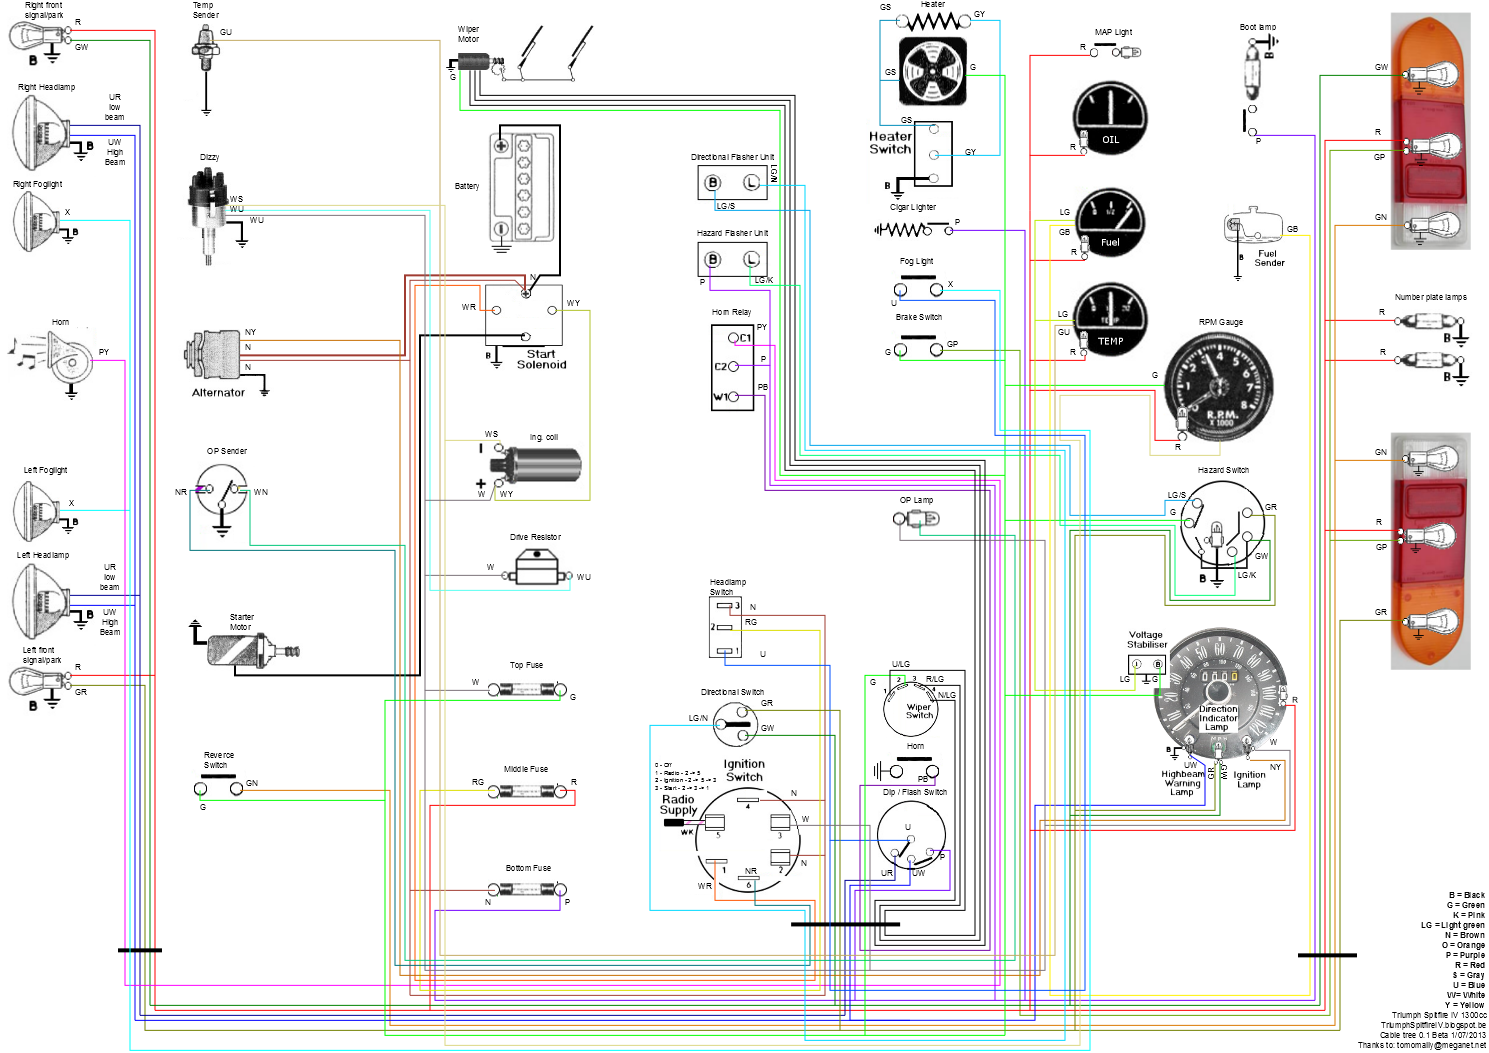 spitfire iv wiring diagram spitfire mkiv wiring diagram how to library the triumph experience 1979 triumph spitfire wiring harness at webbmarketing.co